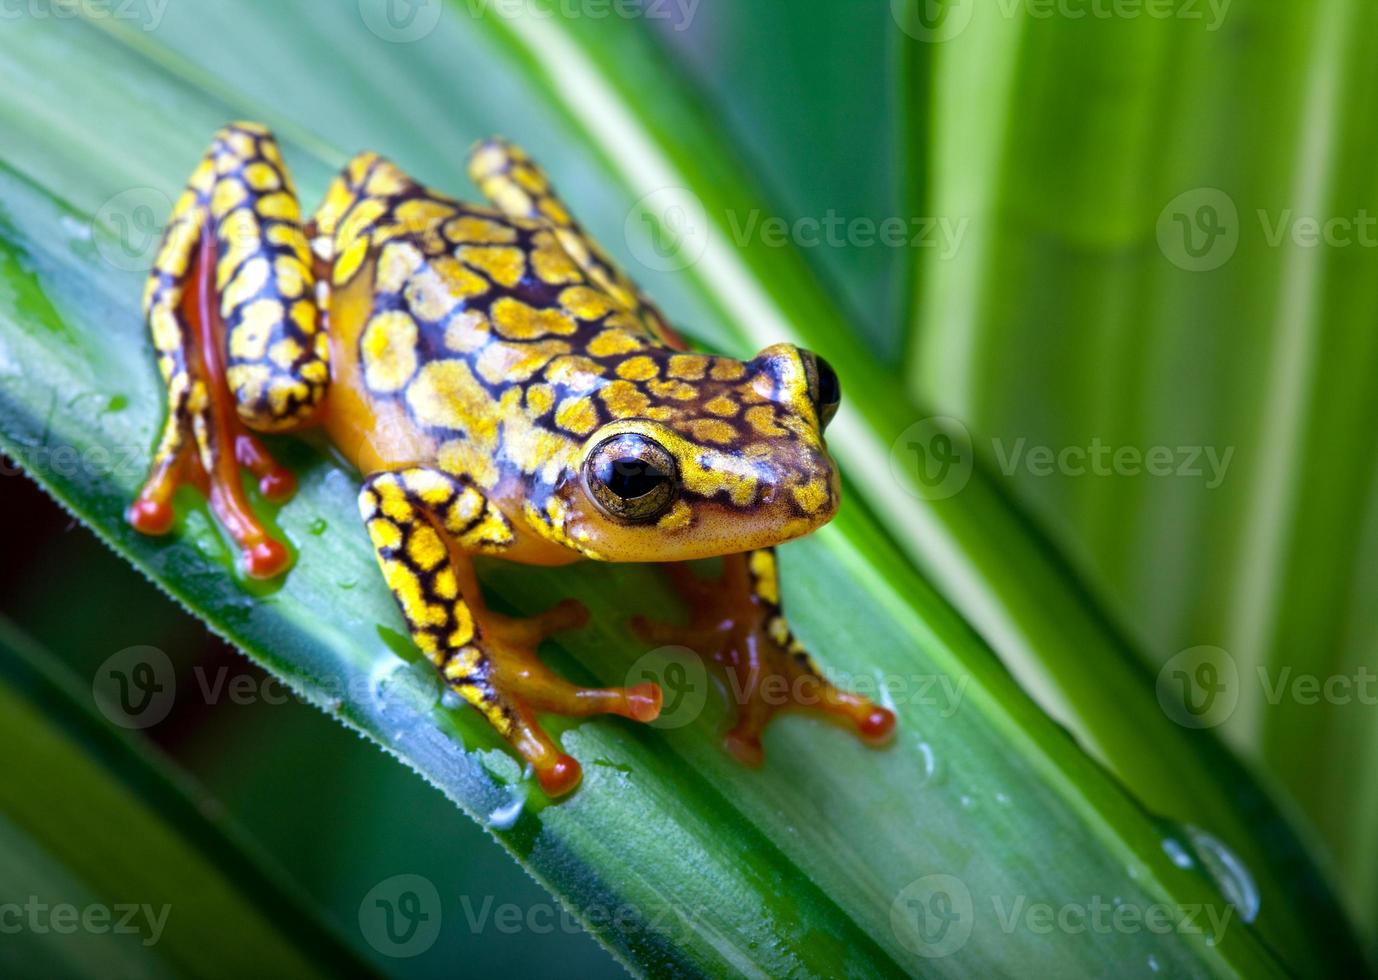 Close-up photograph of a harlequin poison-dart frog photo